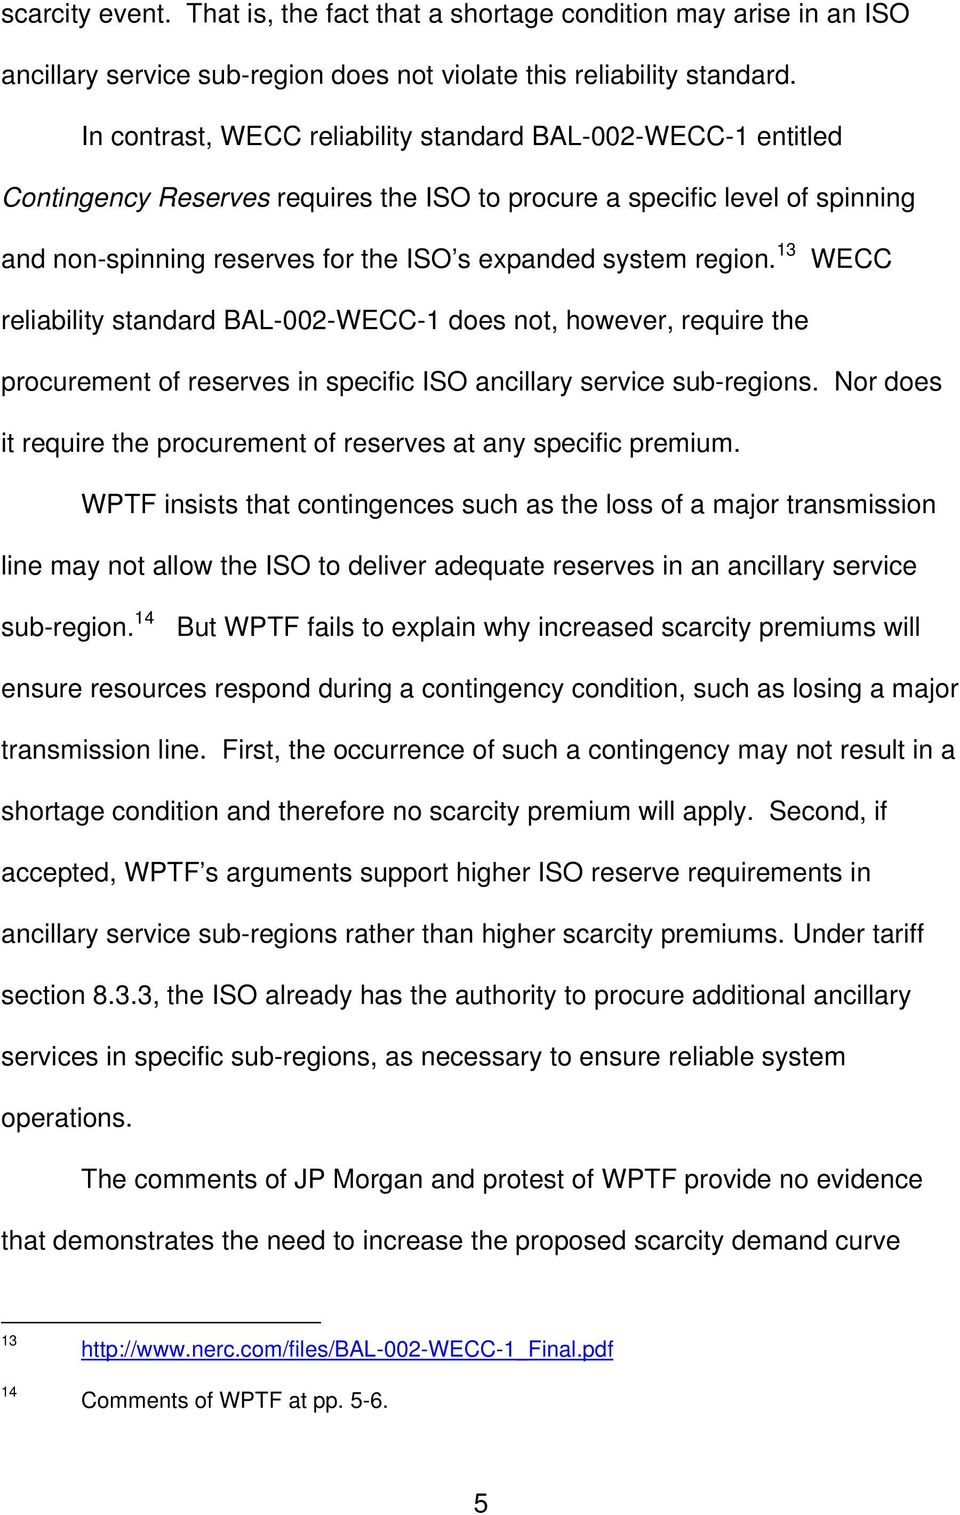 region. 13 WECC reliability standard BAL-002-WECC-1 does not, however, require the procurement of reserves in specific ISO ancillary service sub-regions.